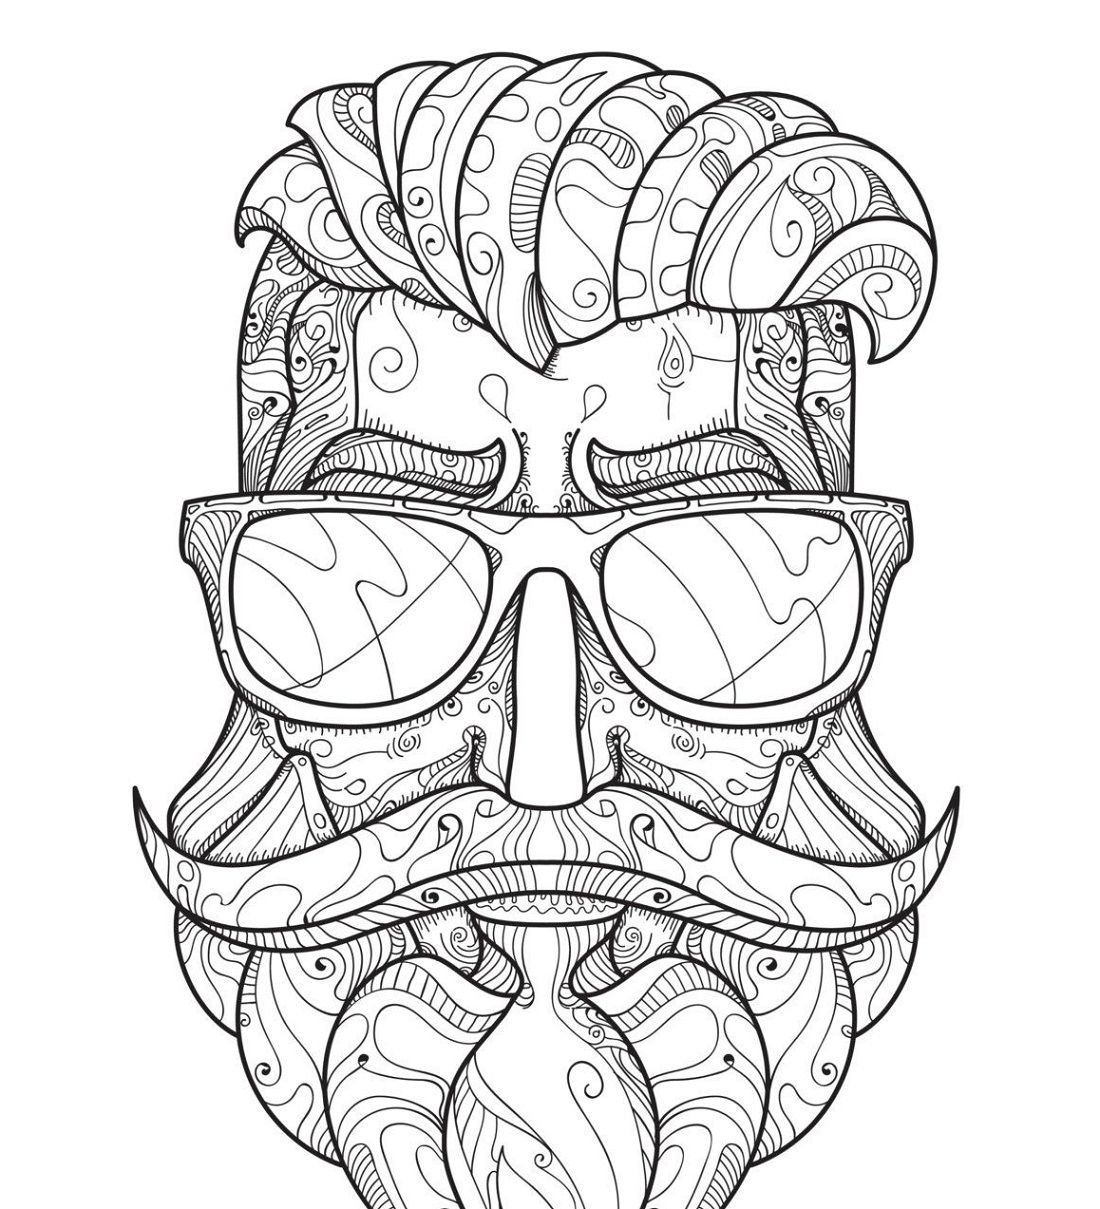 Hipster Coloring Pages For Adults Coloring Pages Coloring Book